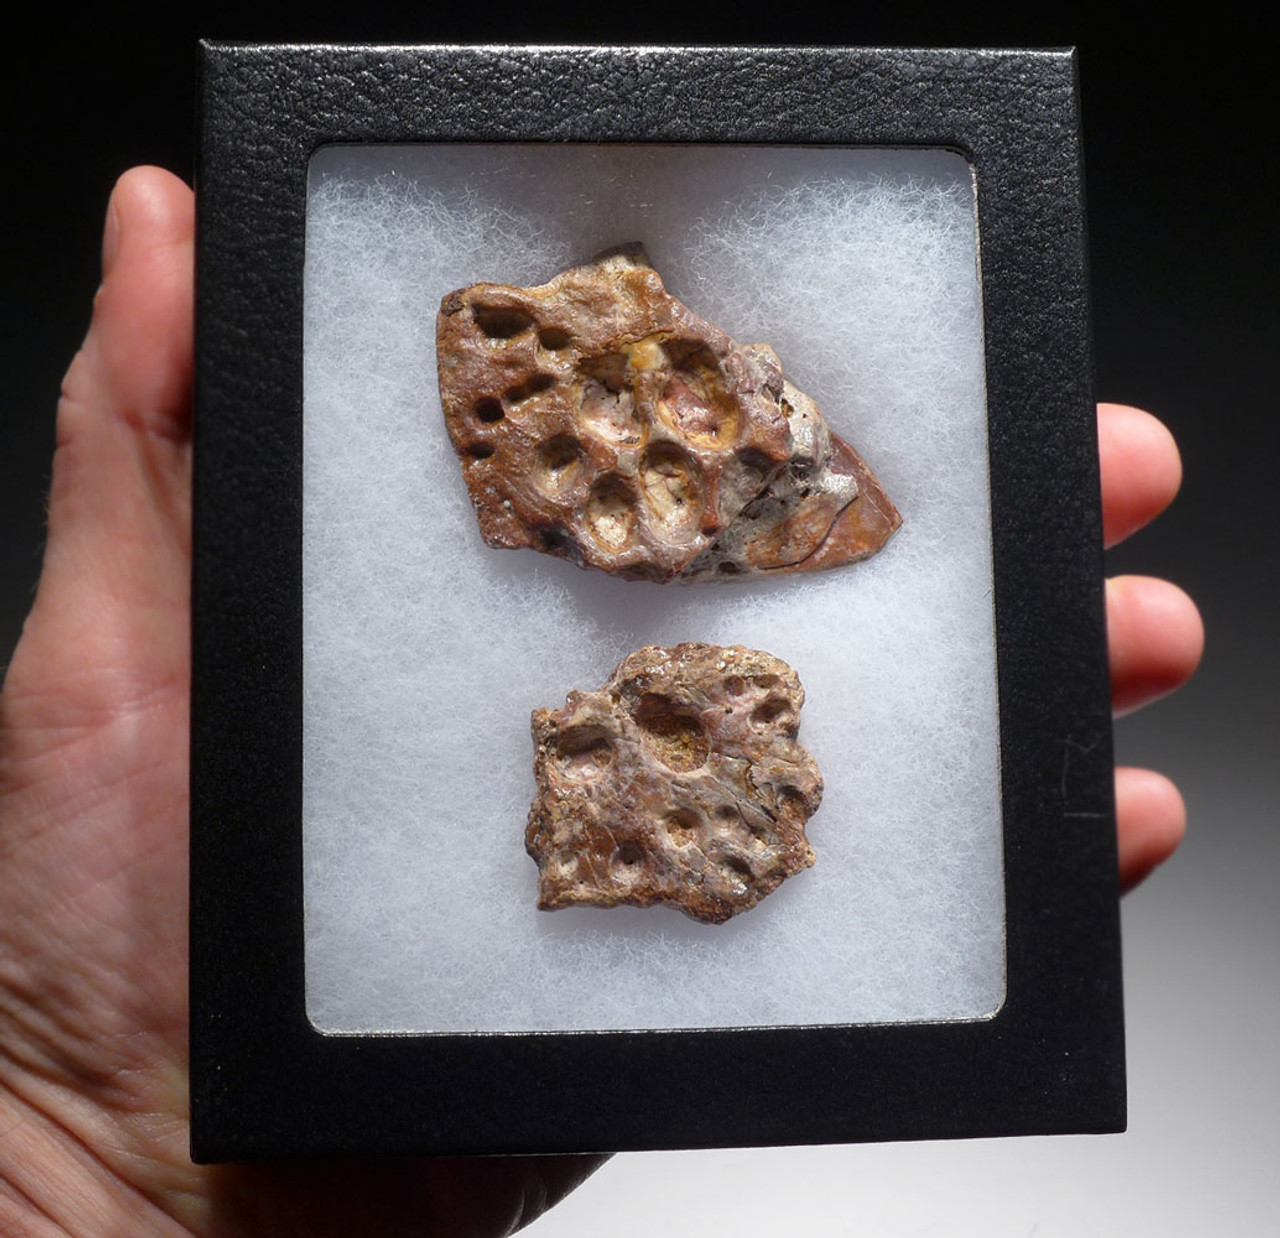 SUPERCROC DERMAL ARMOR SCUTE PIECES FROM A LARGE SARCOSUCHUS IMPERATOR CROCODILE OF THE DINOSAUR ERA *CROC076